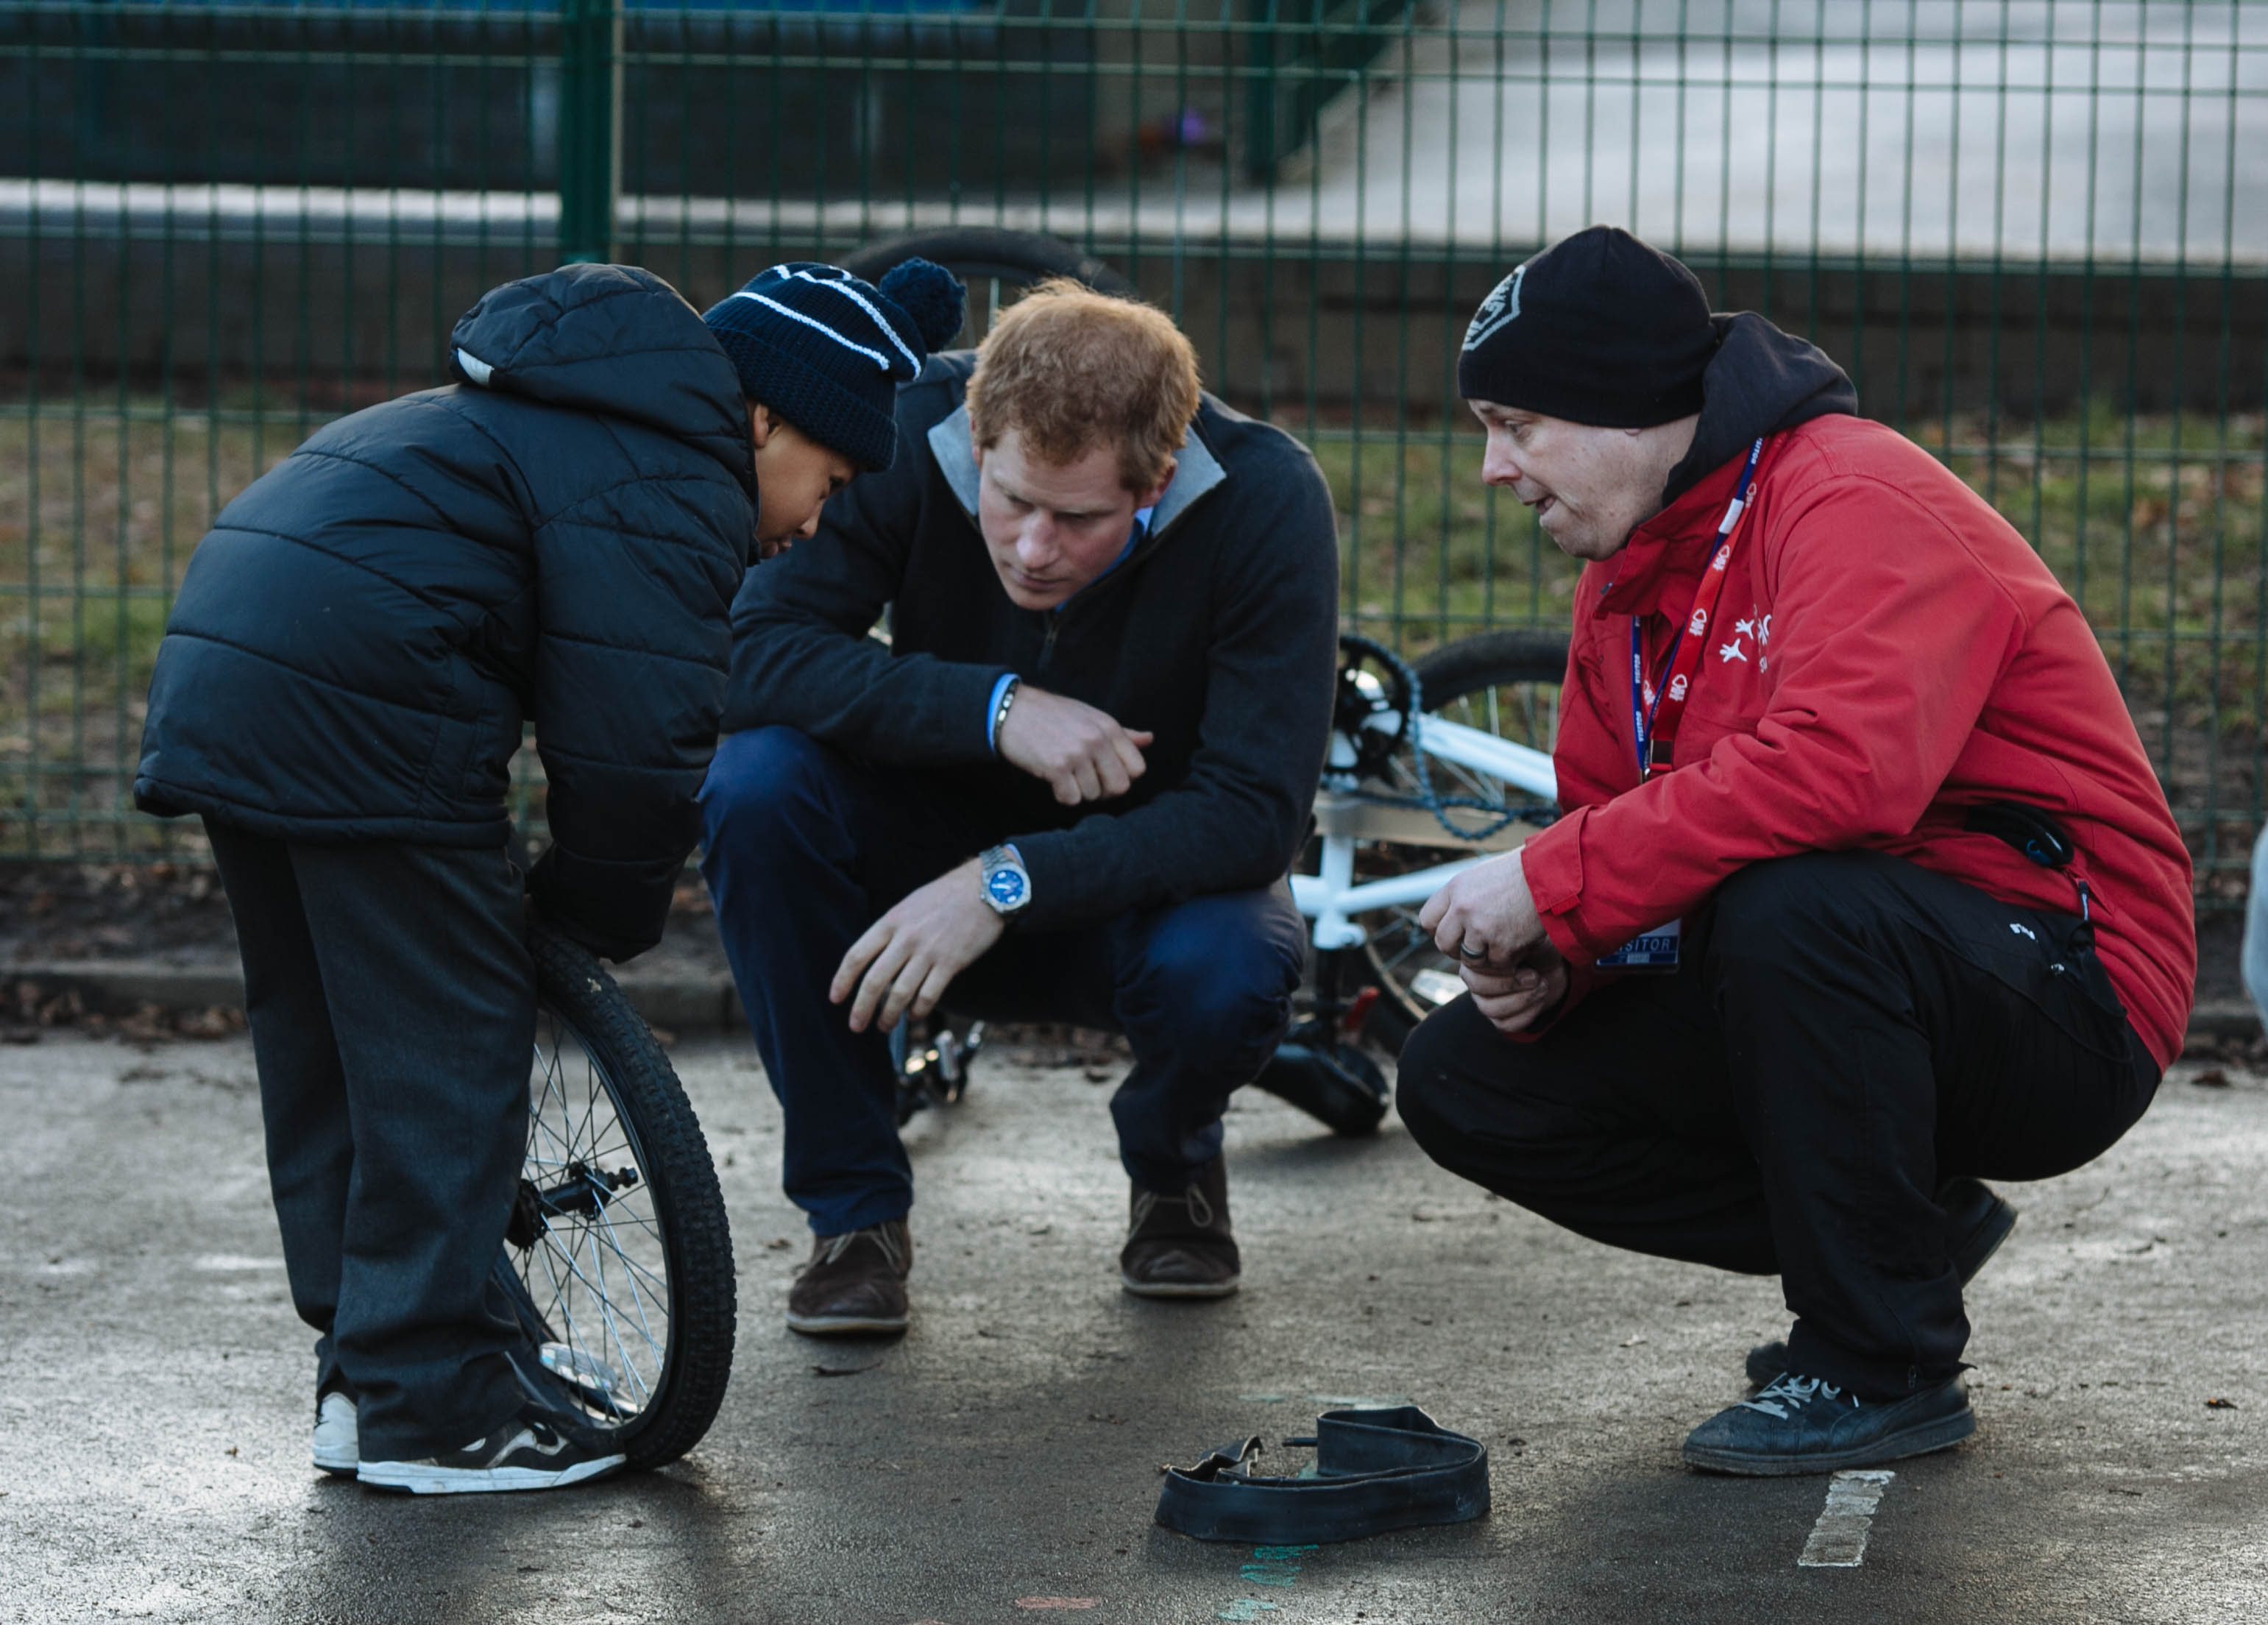 Prince Harry bicycle repair